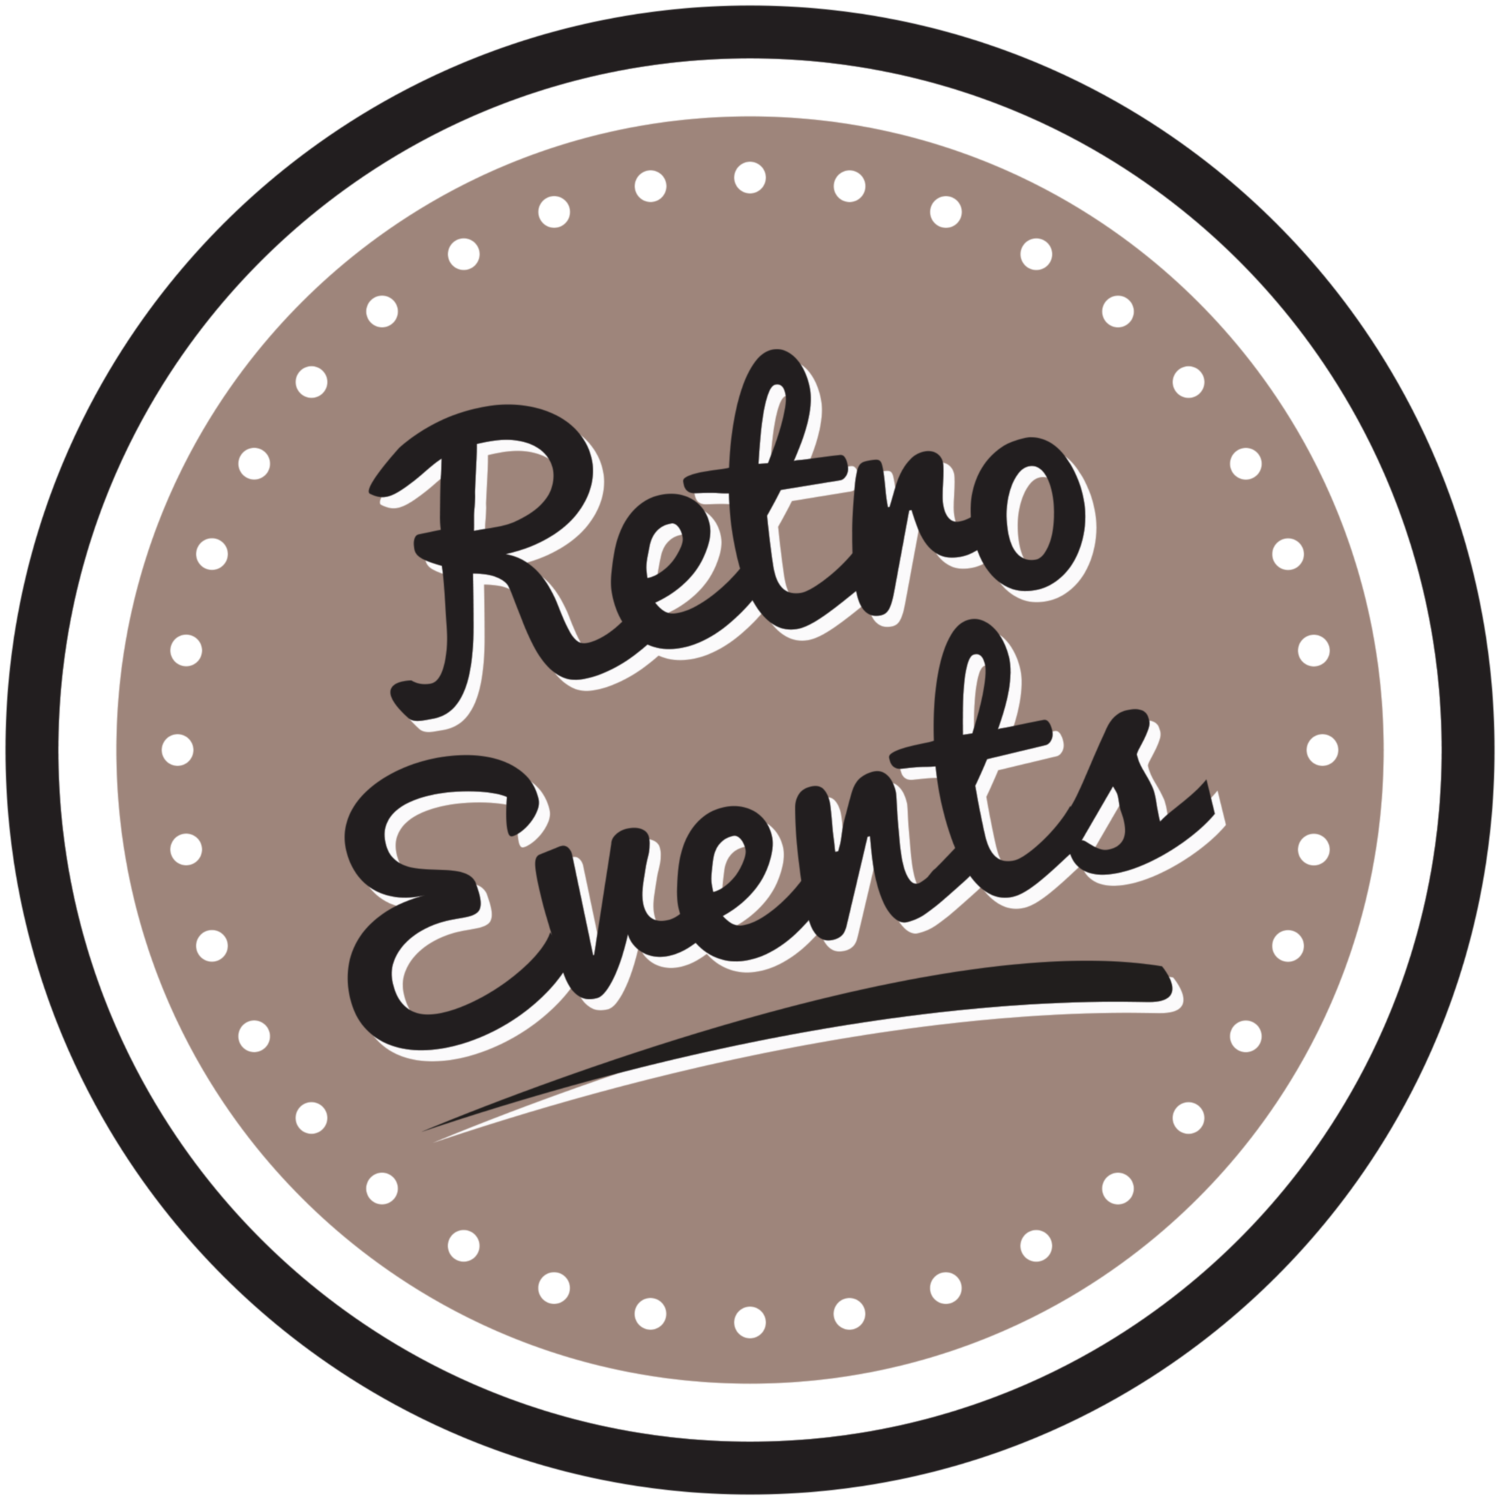 Retro Events